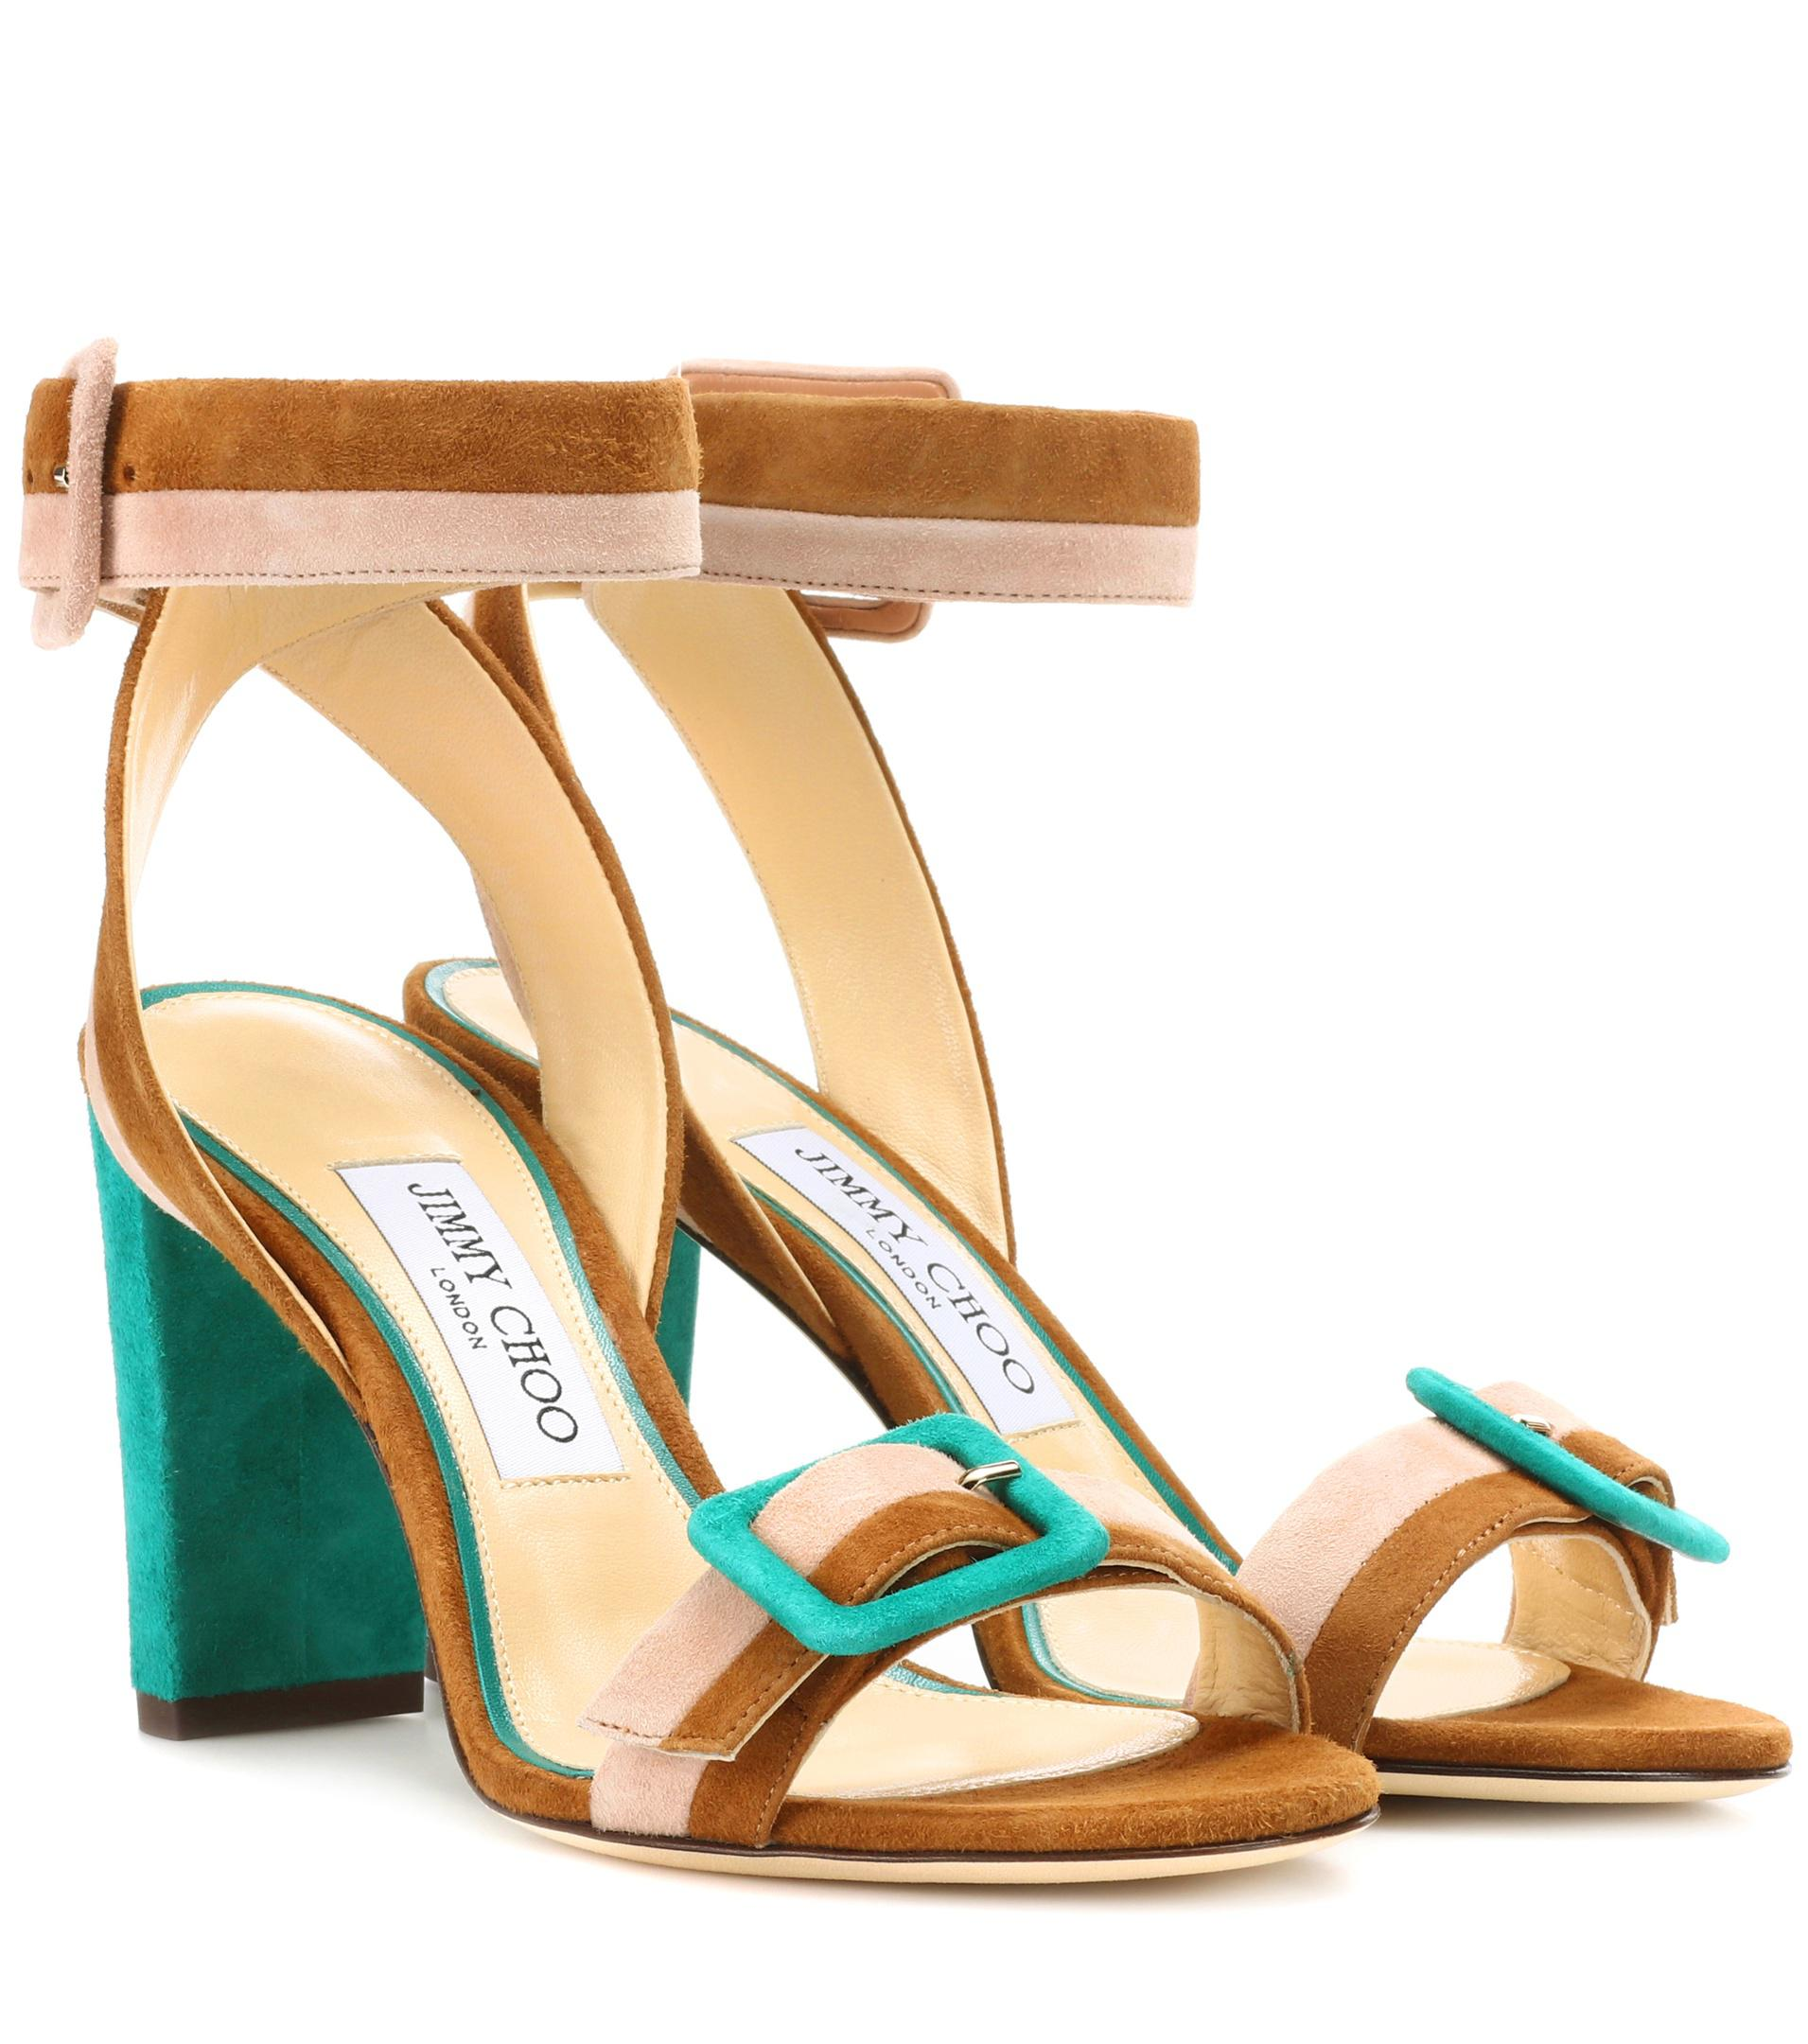 Dacha jeweled suede sandals Jimmy Choo London Outlet Largest Supplier Buy Cheap Newest sF9qUk